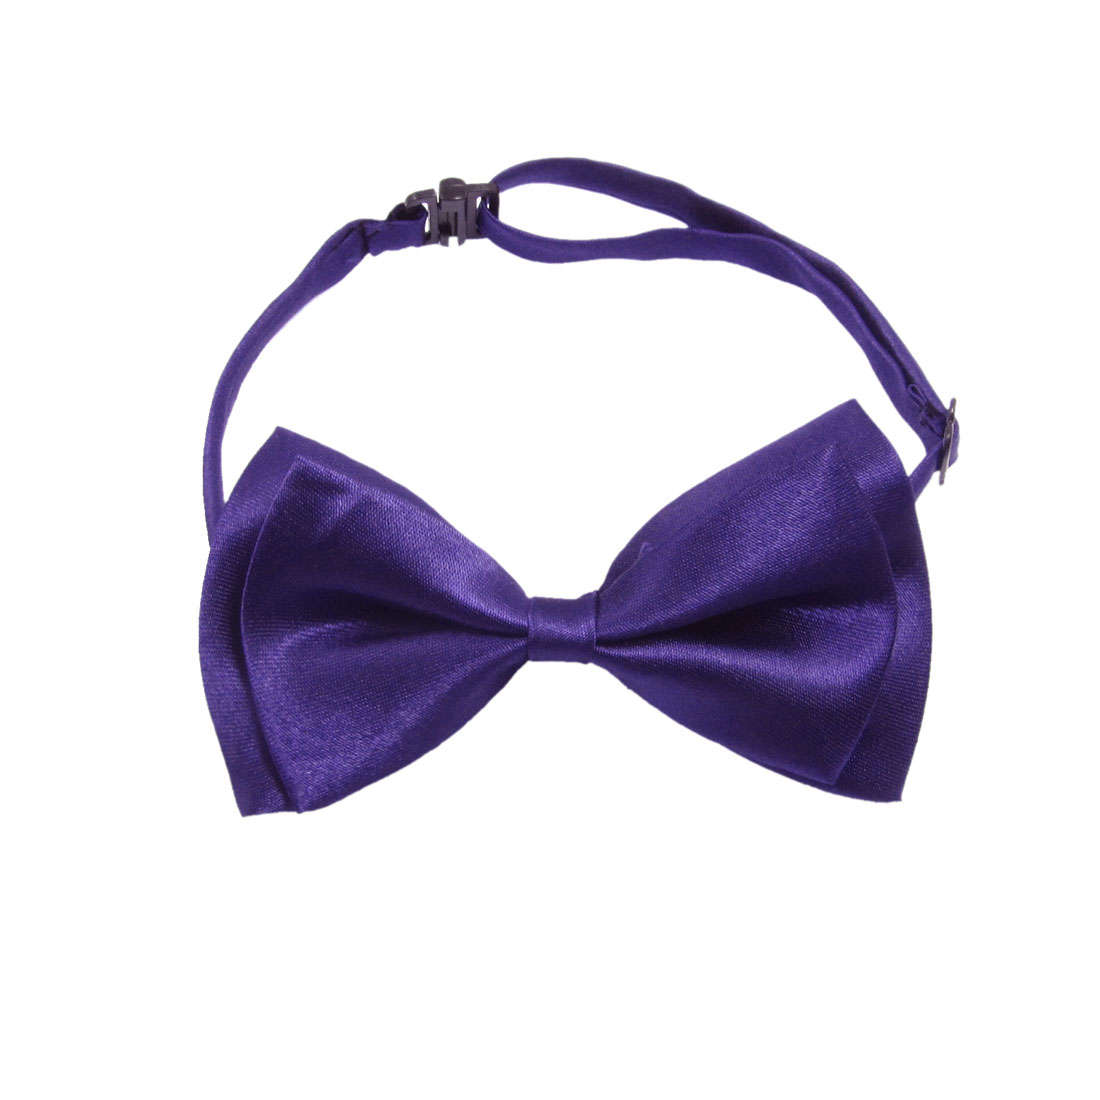 Purple Two Layer Bowknot Interlock Buckle Design Bow Tie for Men